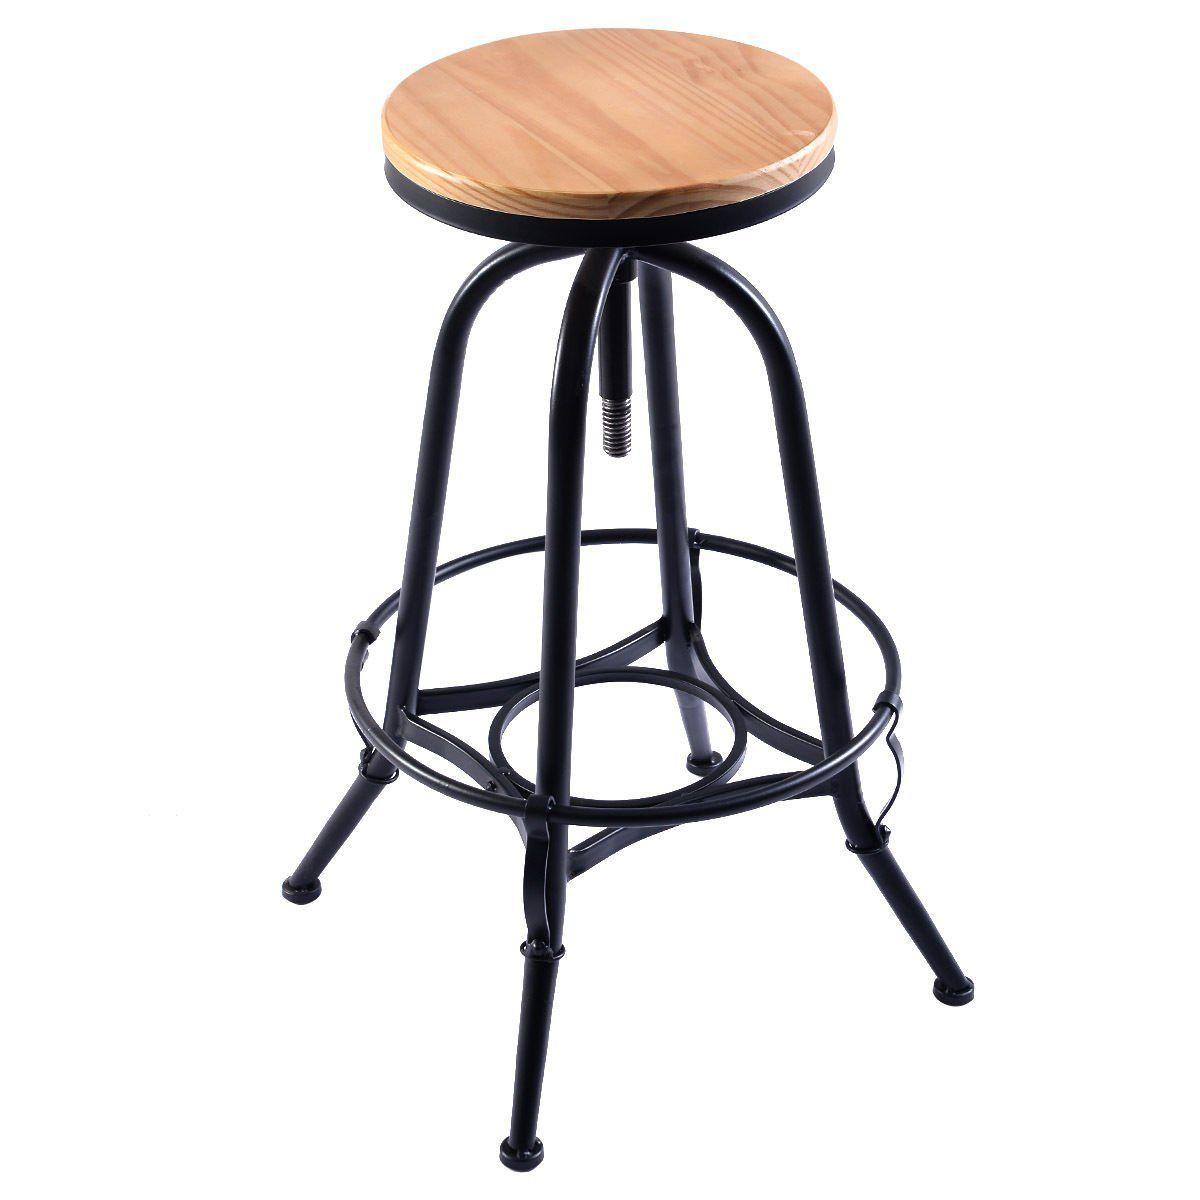 Costway Vintage Bar Stool Metal Frame Wood Top Adjustable Height Swivel Industrial 2bar Stools Vintage Bar Stools Vintage Industrial Furniture Swivel Dining Chairs